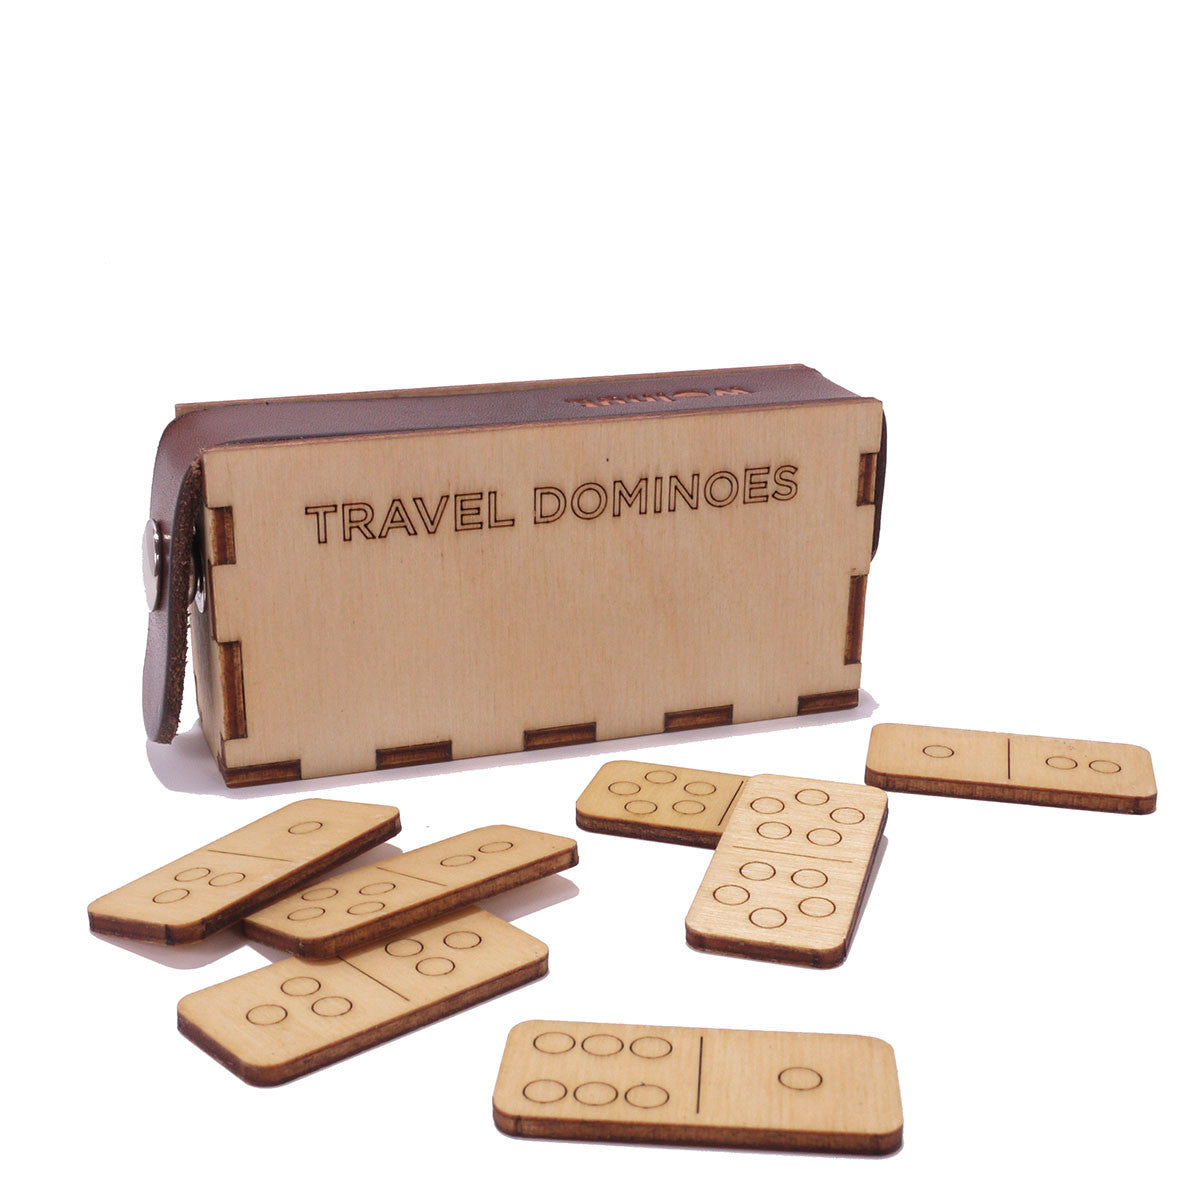 Travel Dominoes by Walnut Studiolo